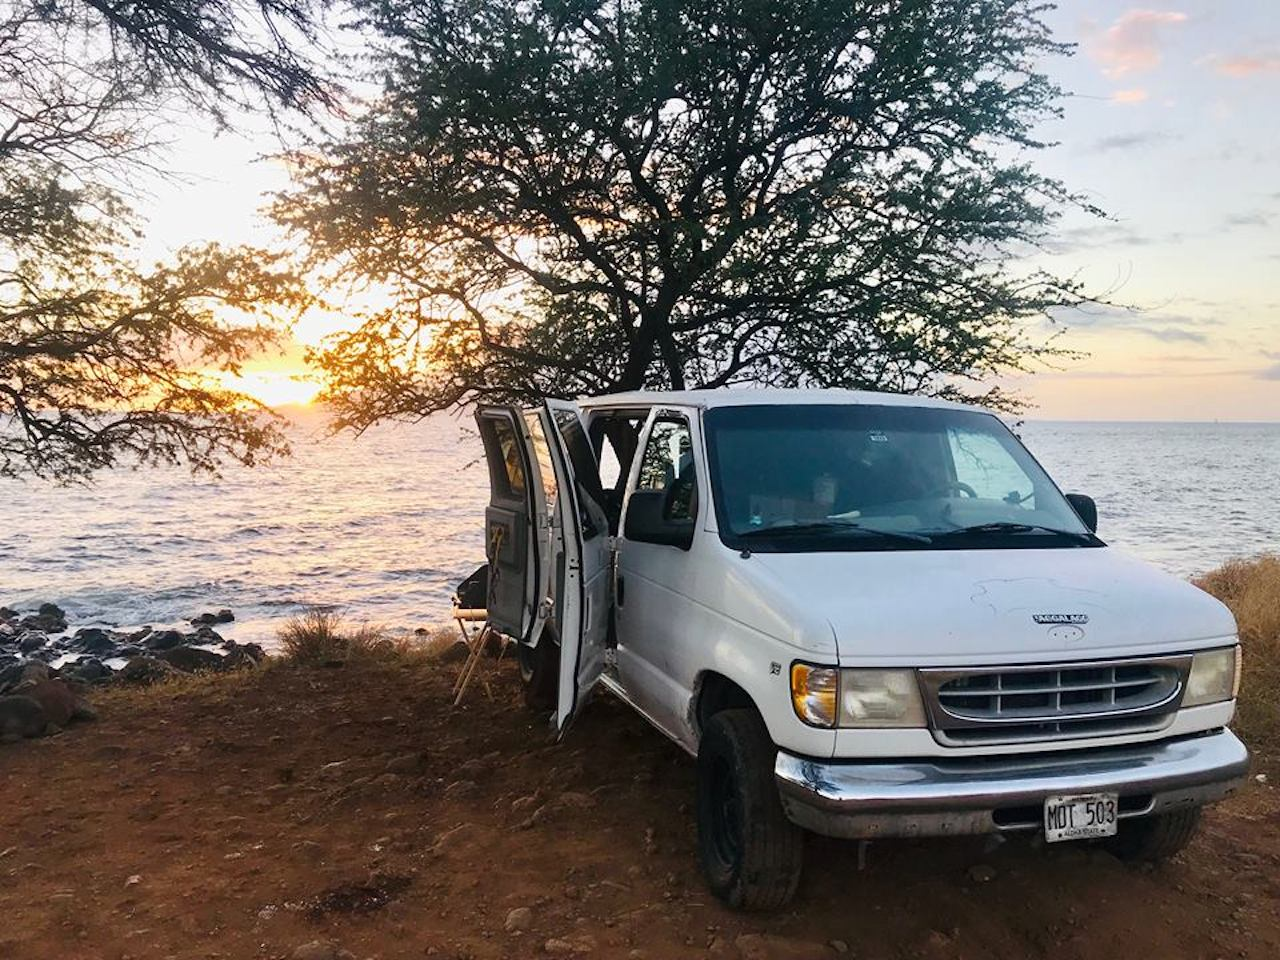 d9687e9be0 book vacation rental campervan campervans vans rv google maps gps vanlife  maui lahaina fully equipped with